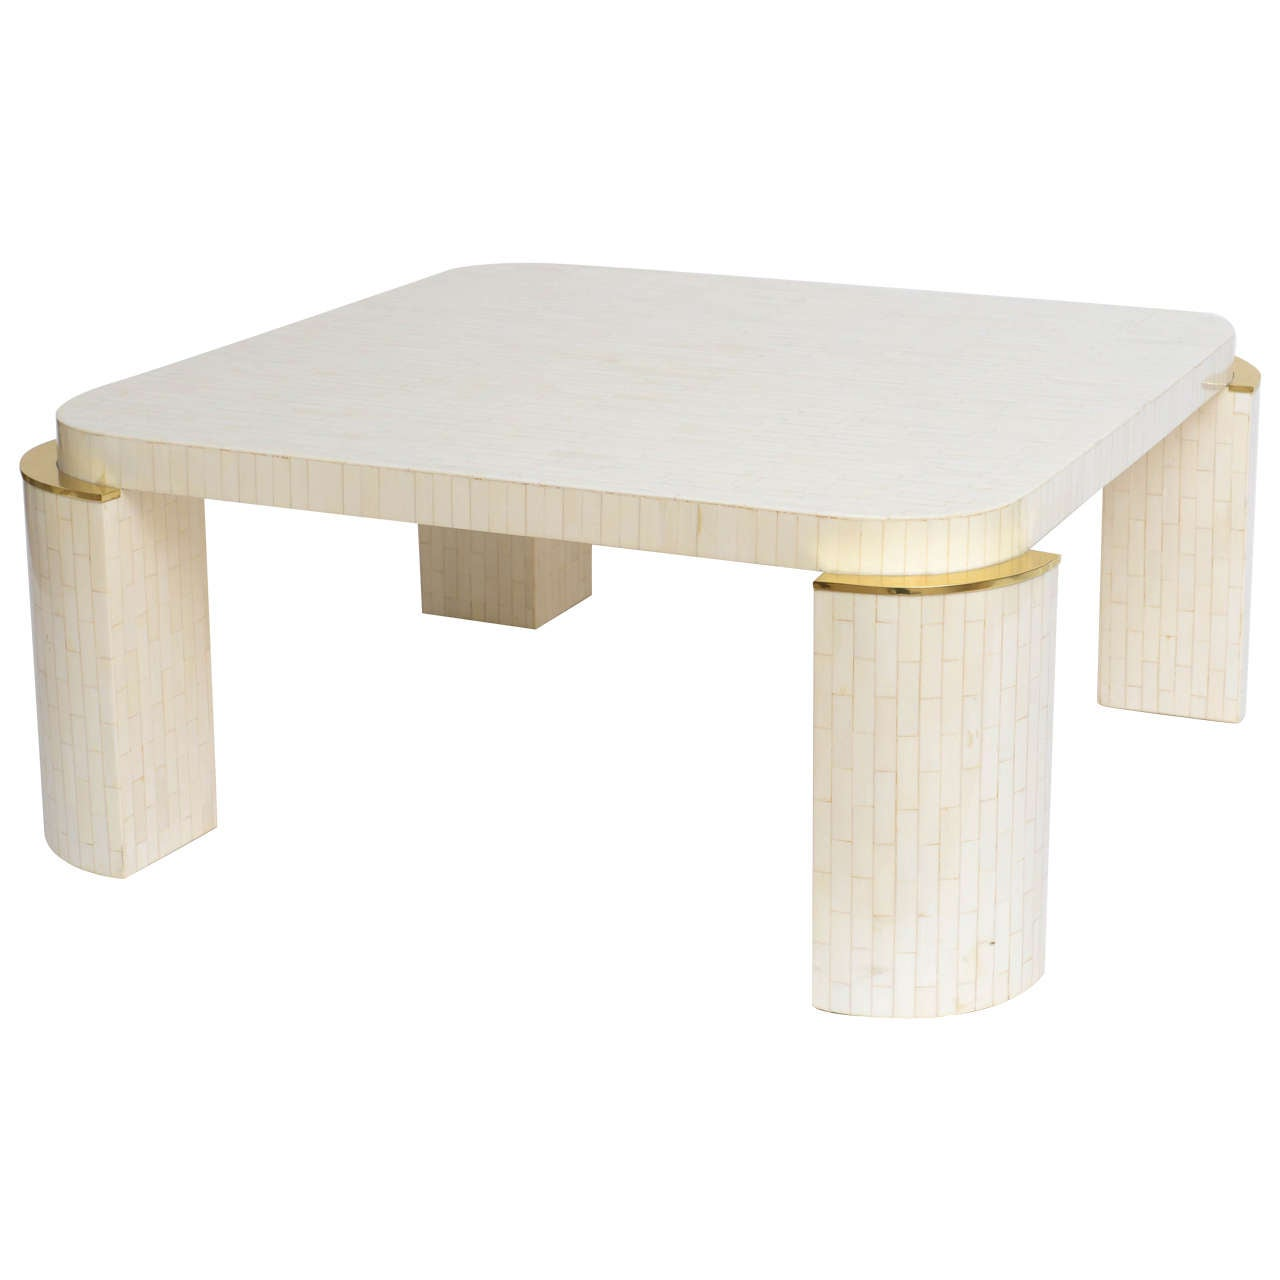 bone inlay cocktail table with brass corner caps at 1stdibs. Black Bedroom Furniture Sets. Home Design Ideas